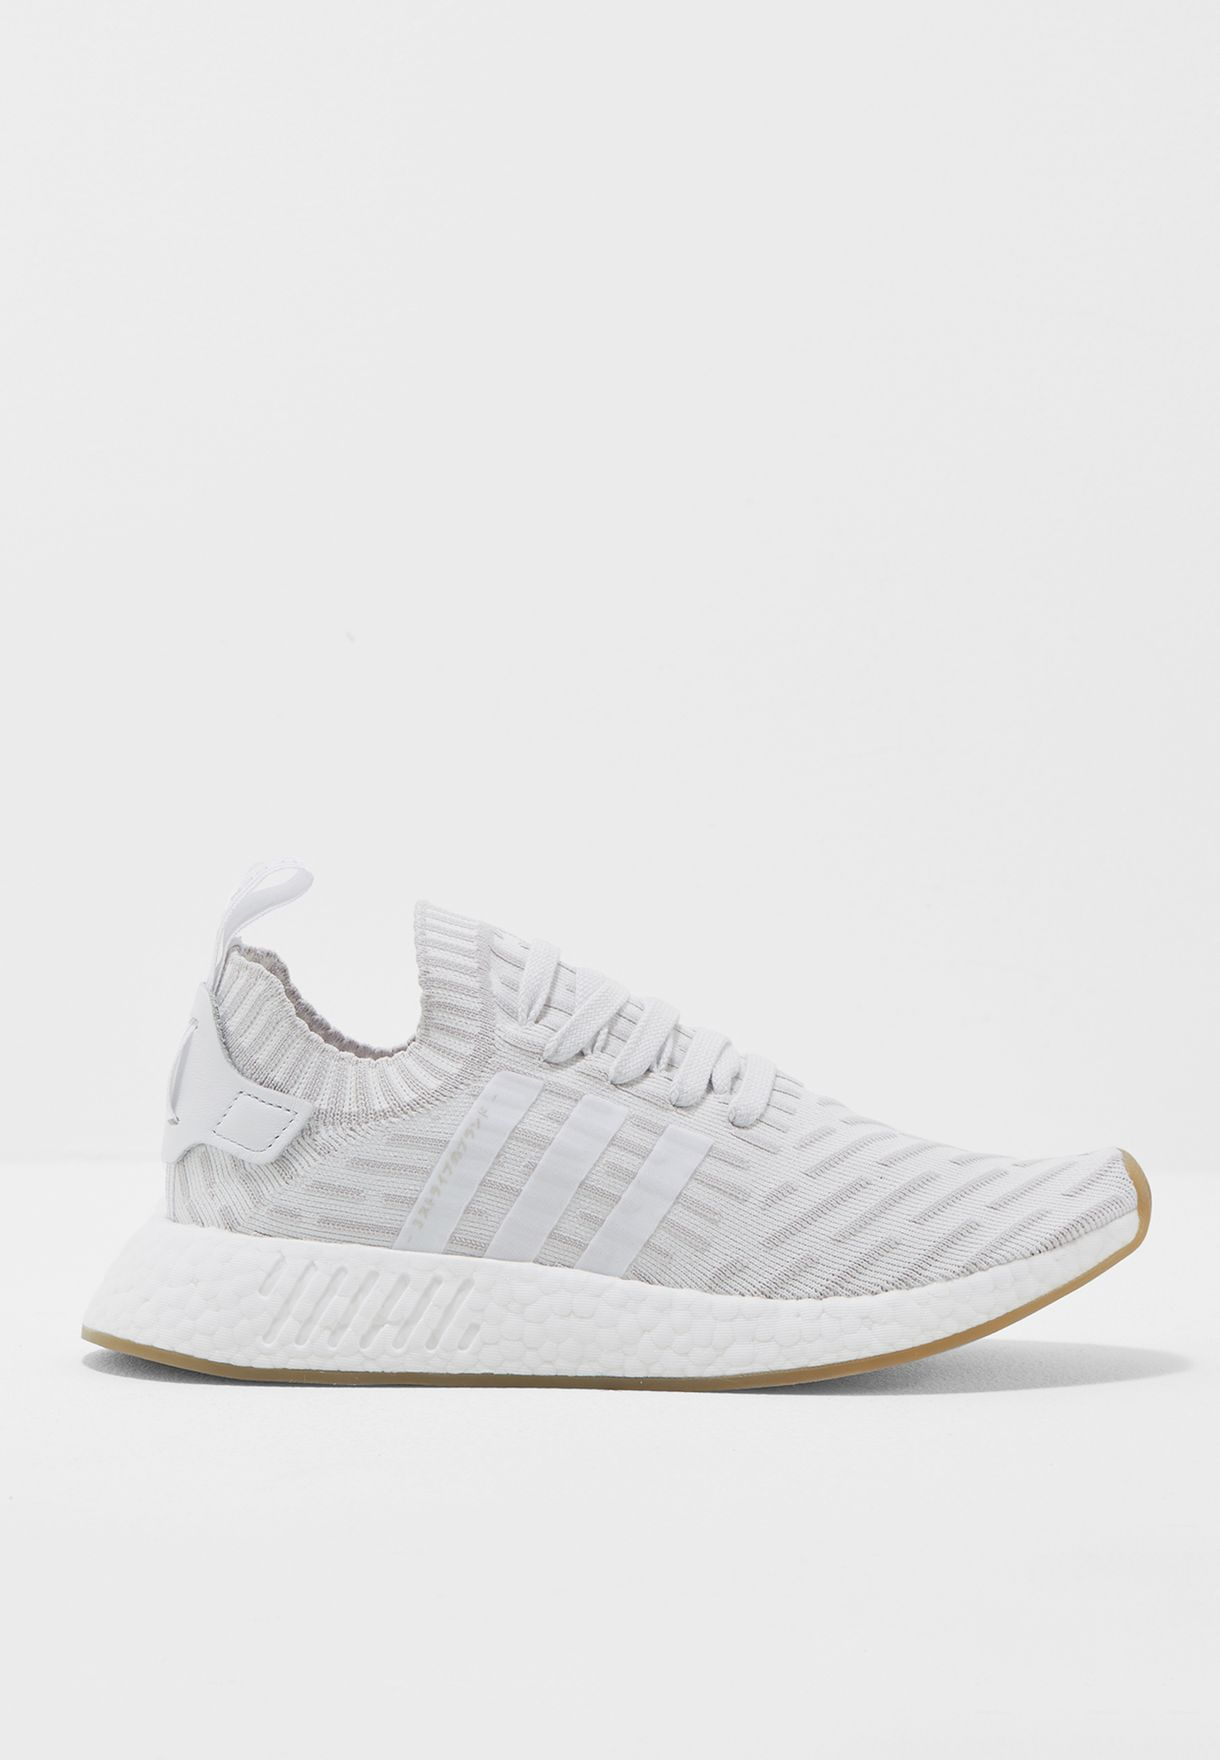 32d2ce20227883 Shop adidas Originals white NMD R2 PK W BY9954 for Women in UAE ...